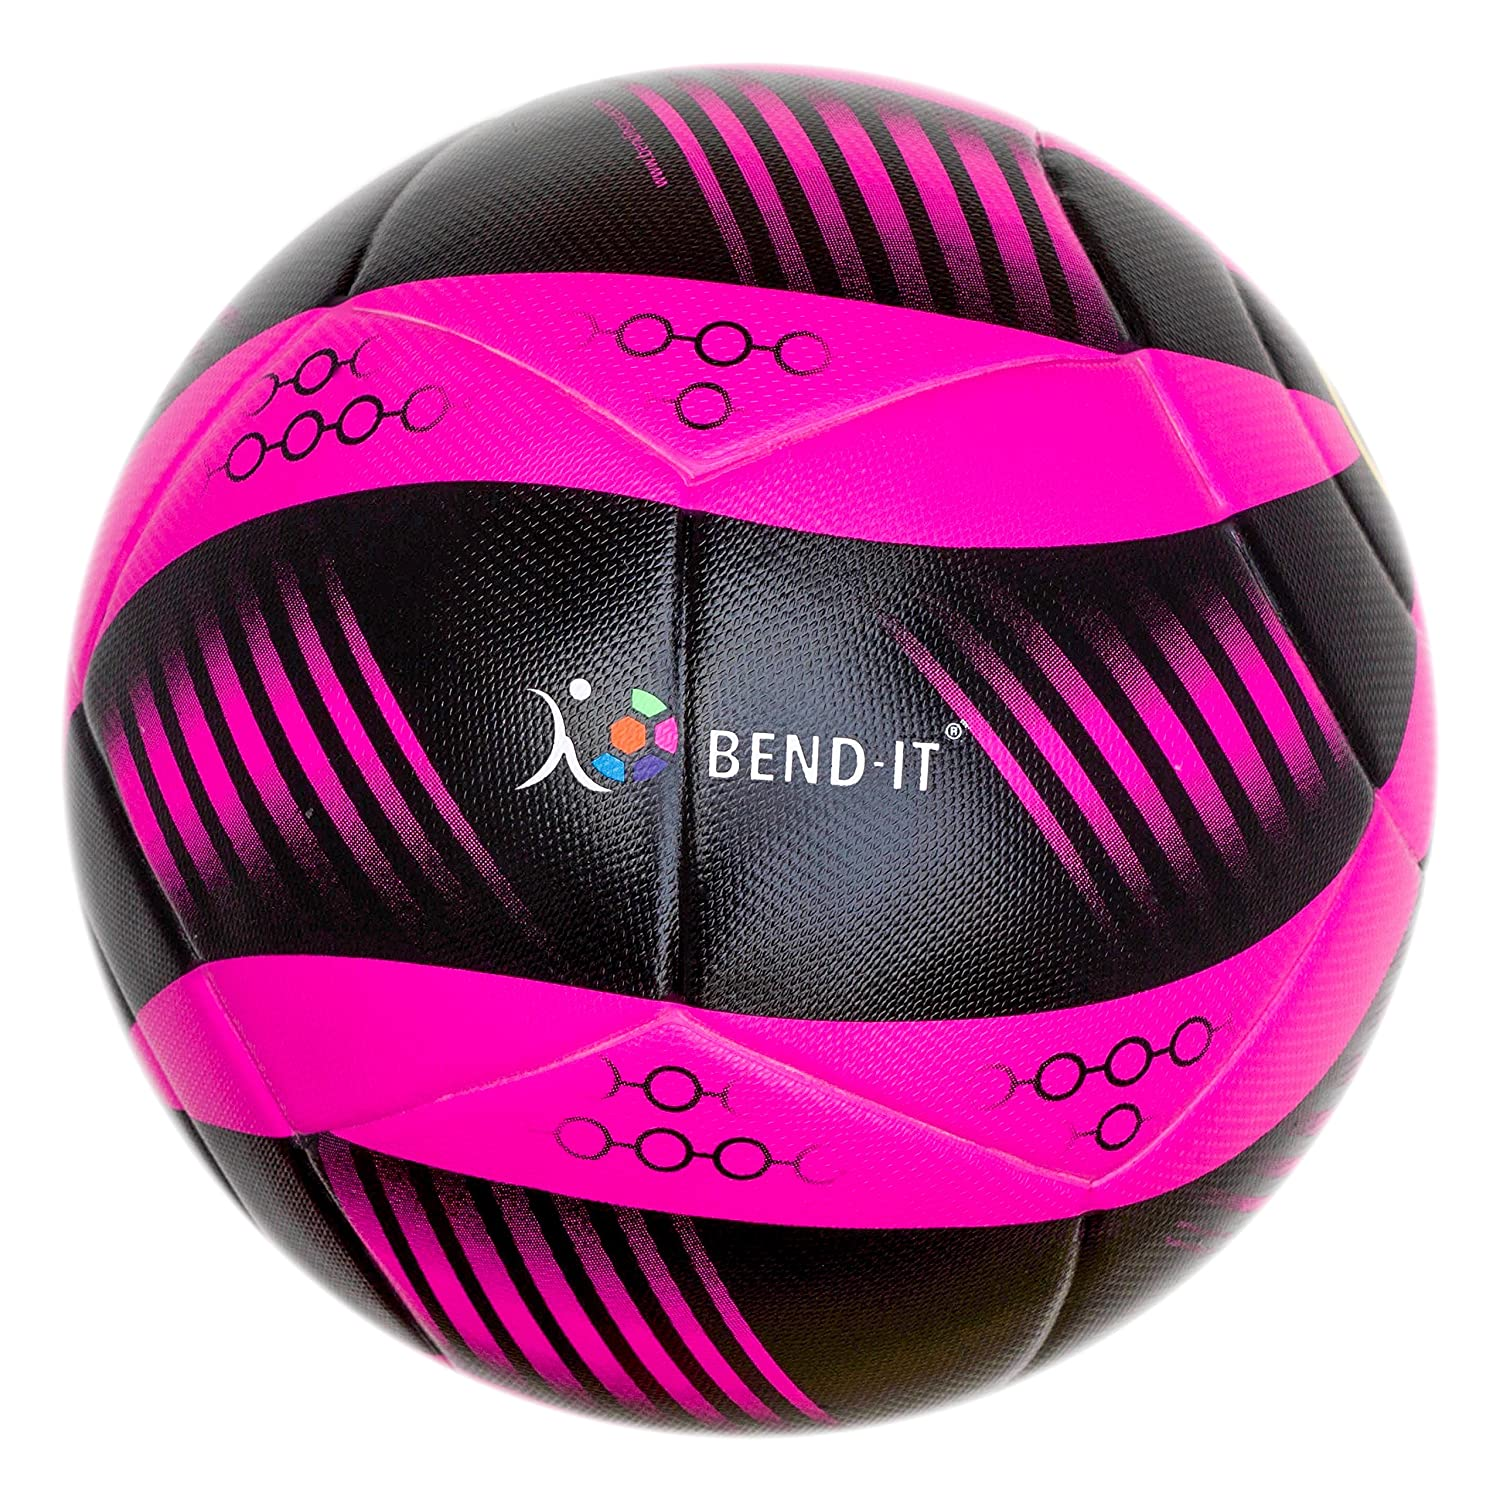 bend-itサッカー、knuckle-it Pro、サッカーボール、Official Match Ball with VPM and VRCテクノロジー B075RRXLQK 5|ピンク / ブラック ピンク / ブラック 5